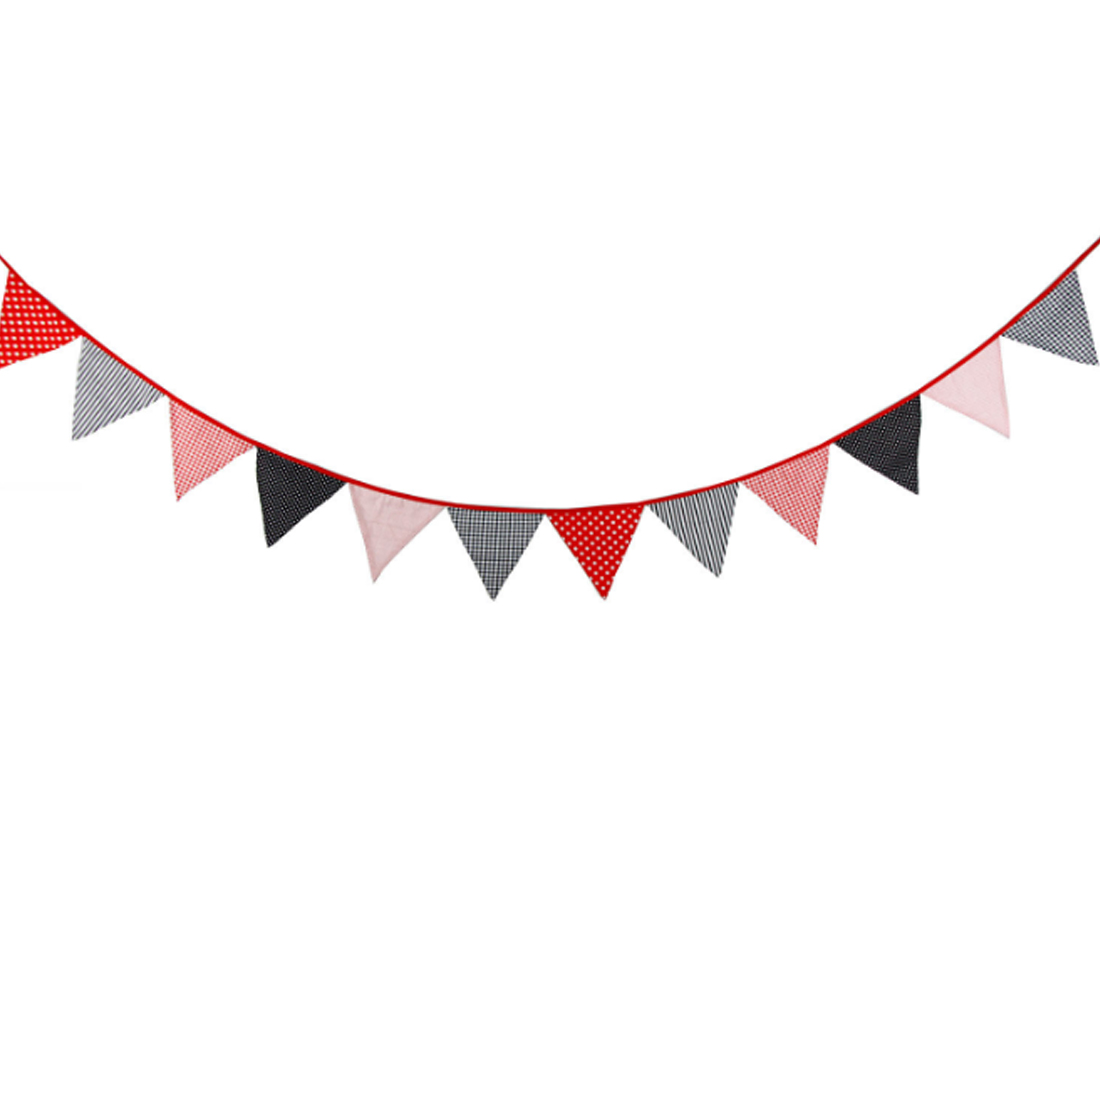 New 1pcs 20cm Recycle Printing Banner Cotton Fabric Pennant Flag For Party Decoration ECO Style